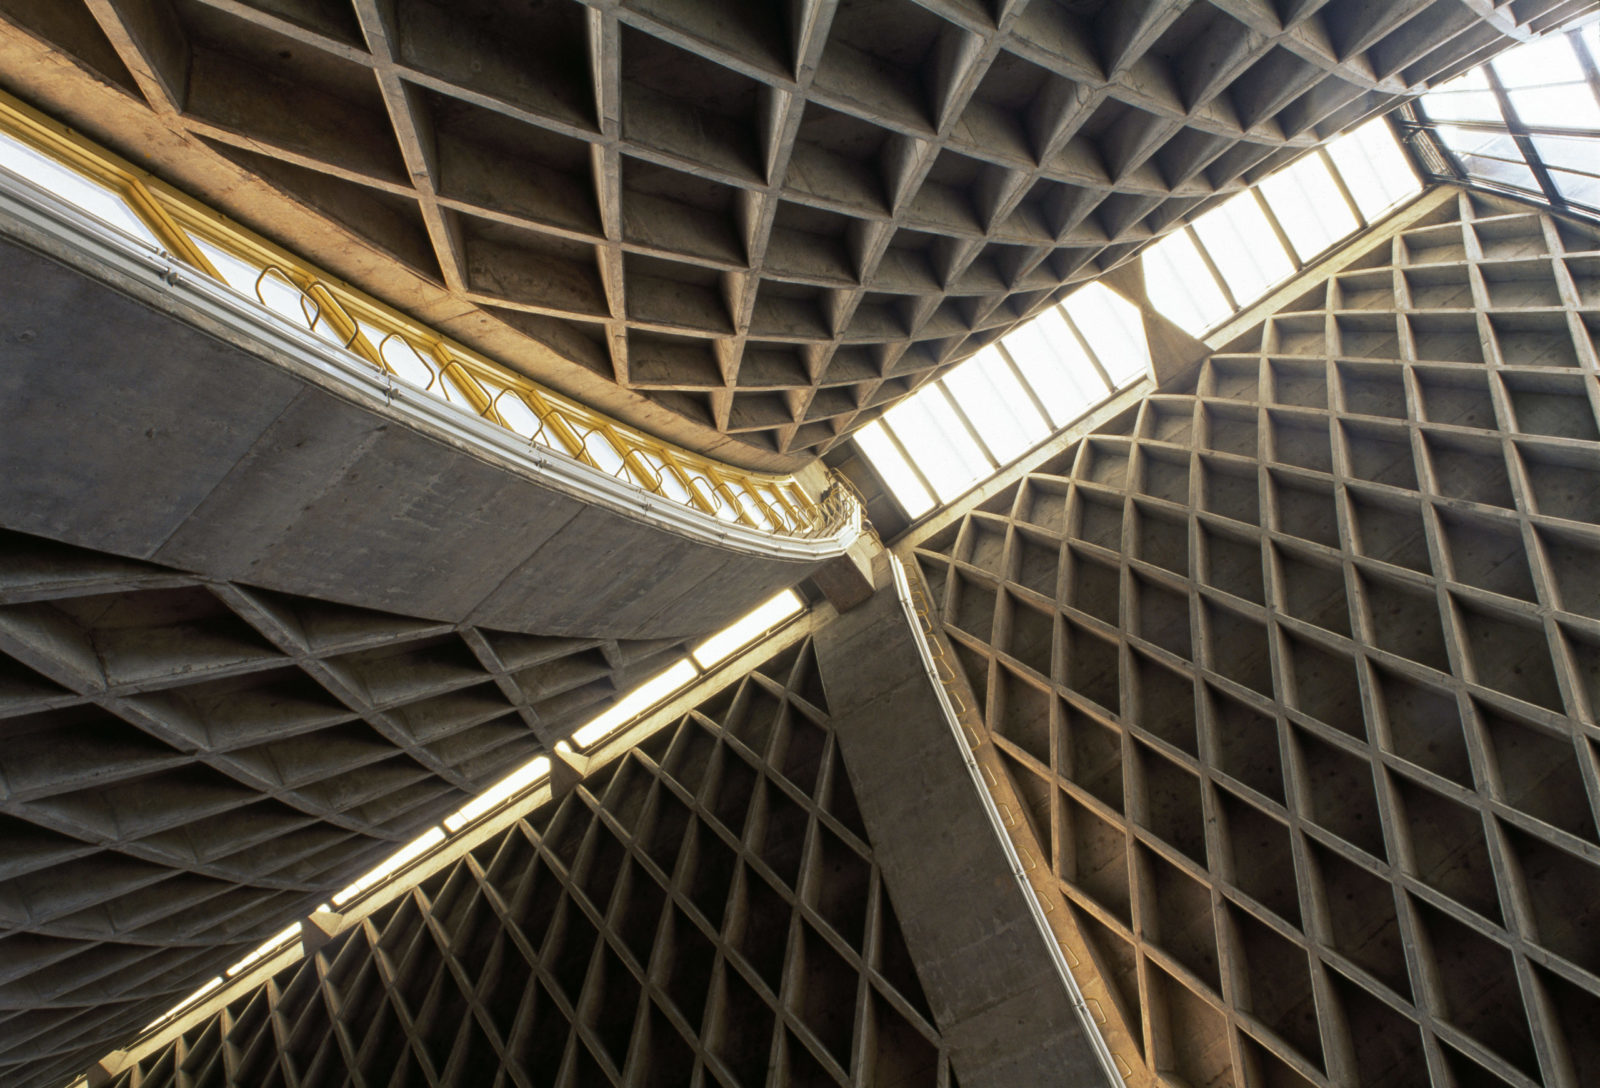 Photograph of geometric sweeping interior of IM Pei's Luce Chapel